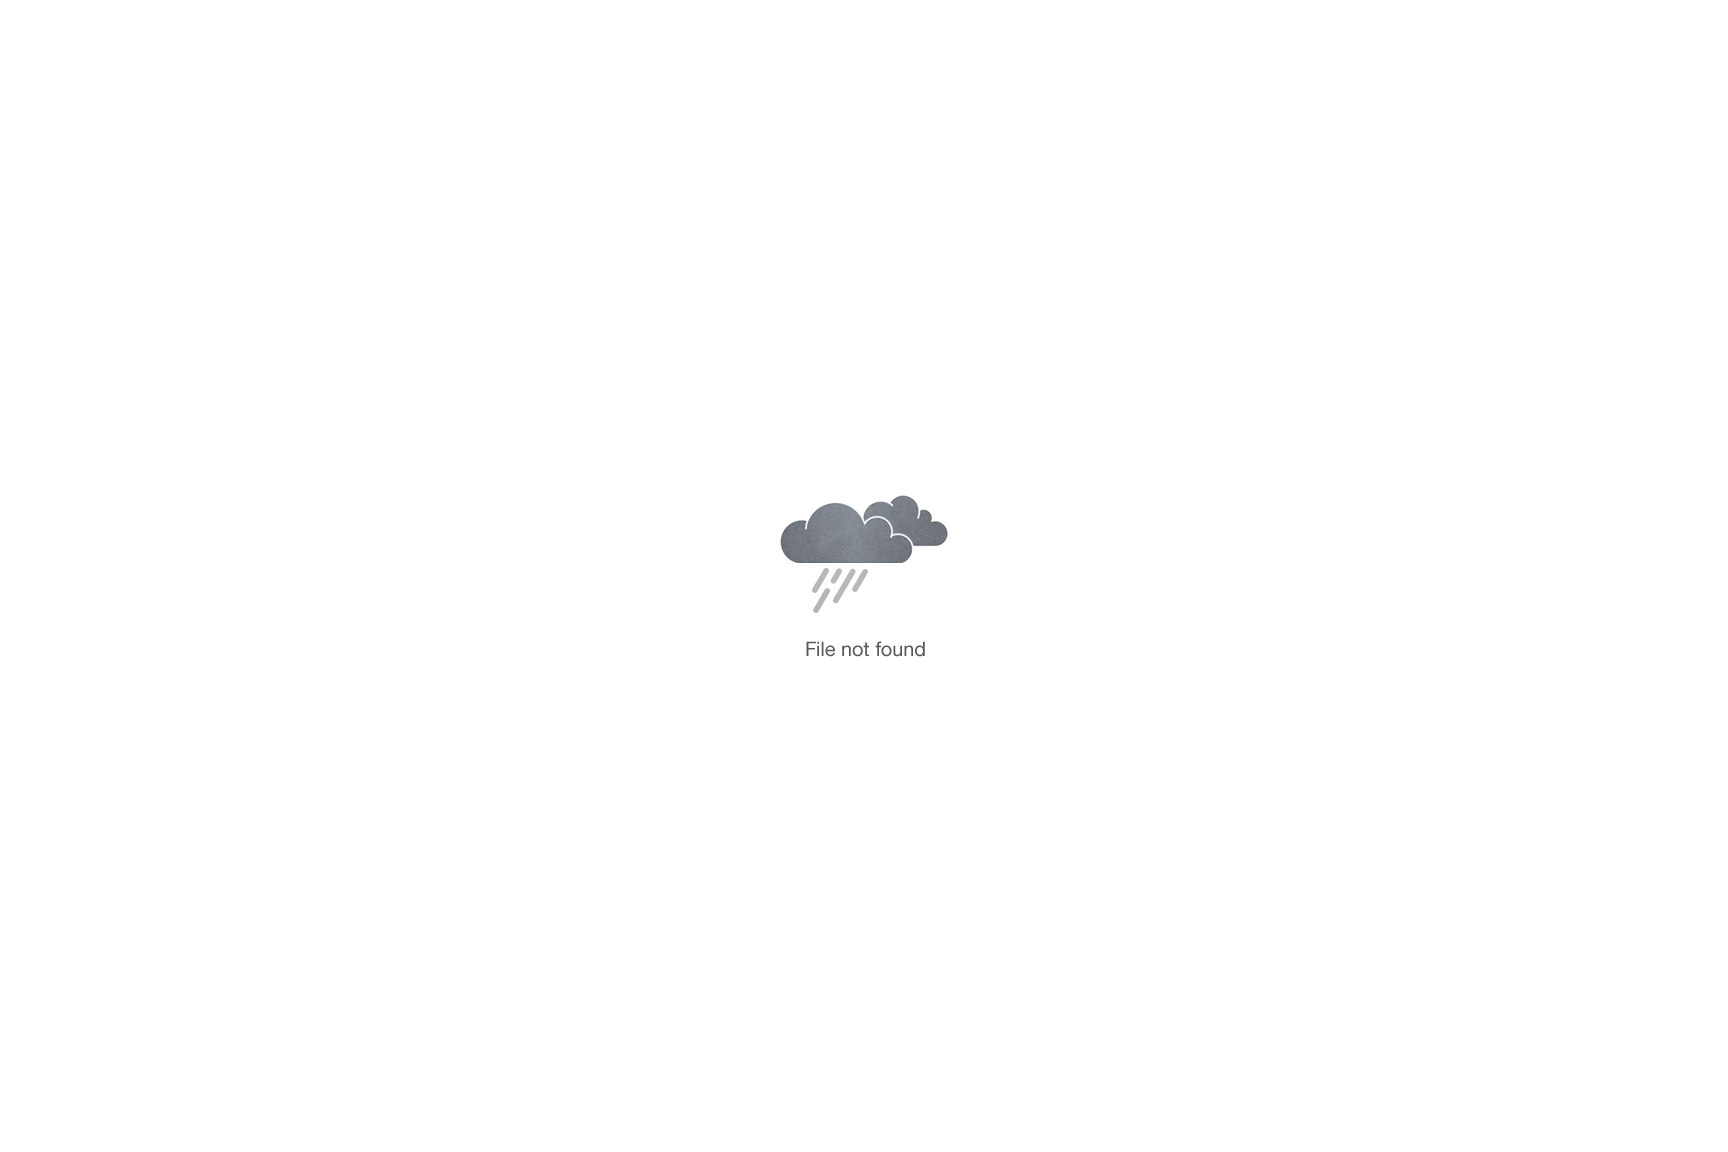 Clarisse-Doutriaux-Rugby-Sponsorise-me-image-4